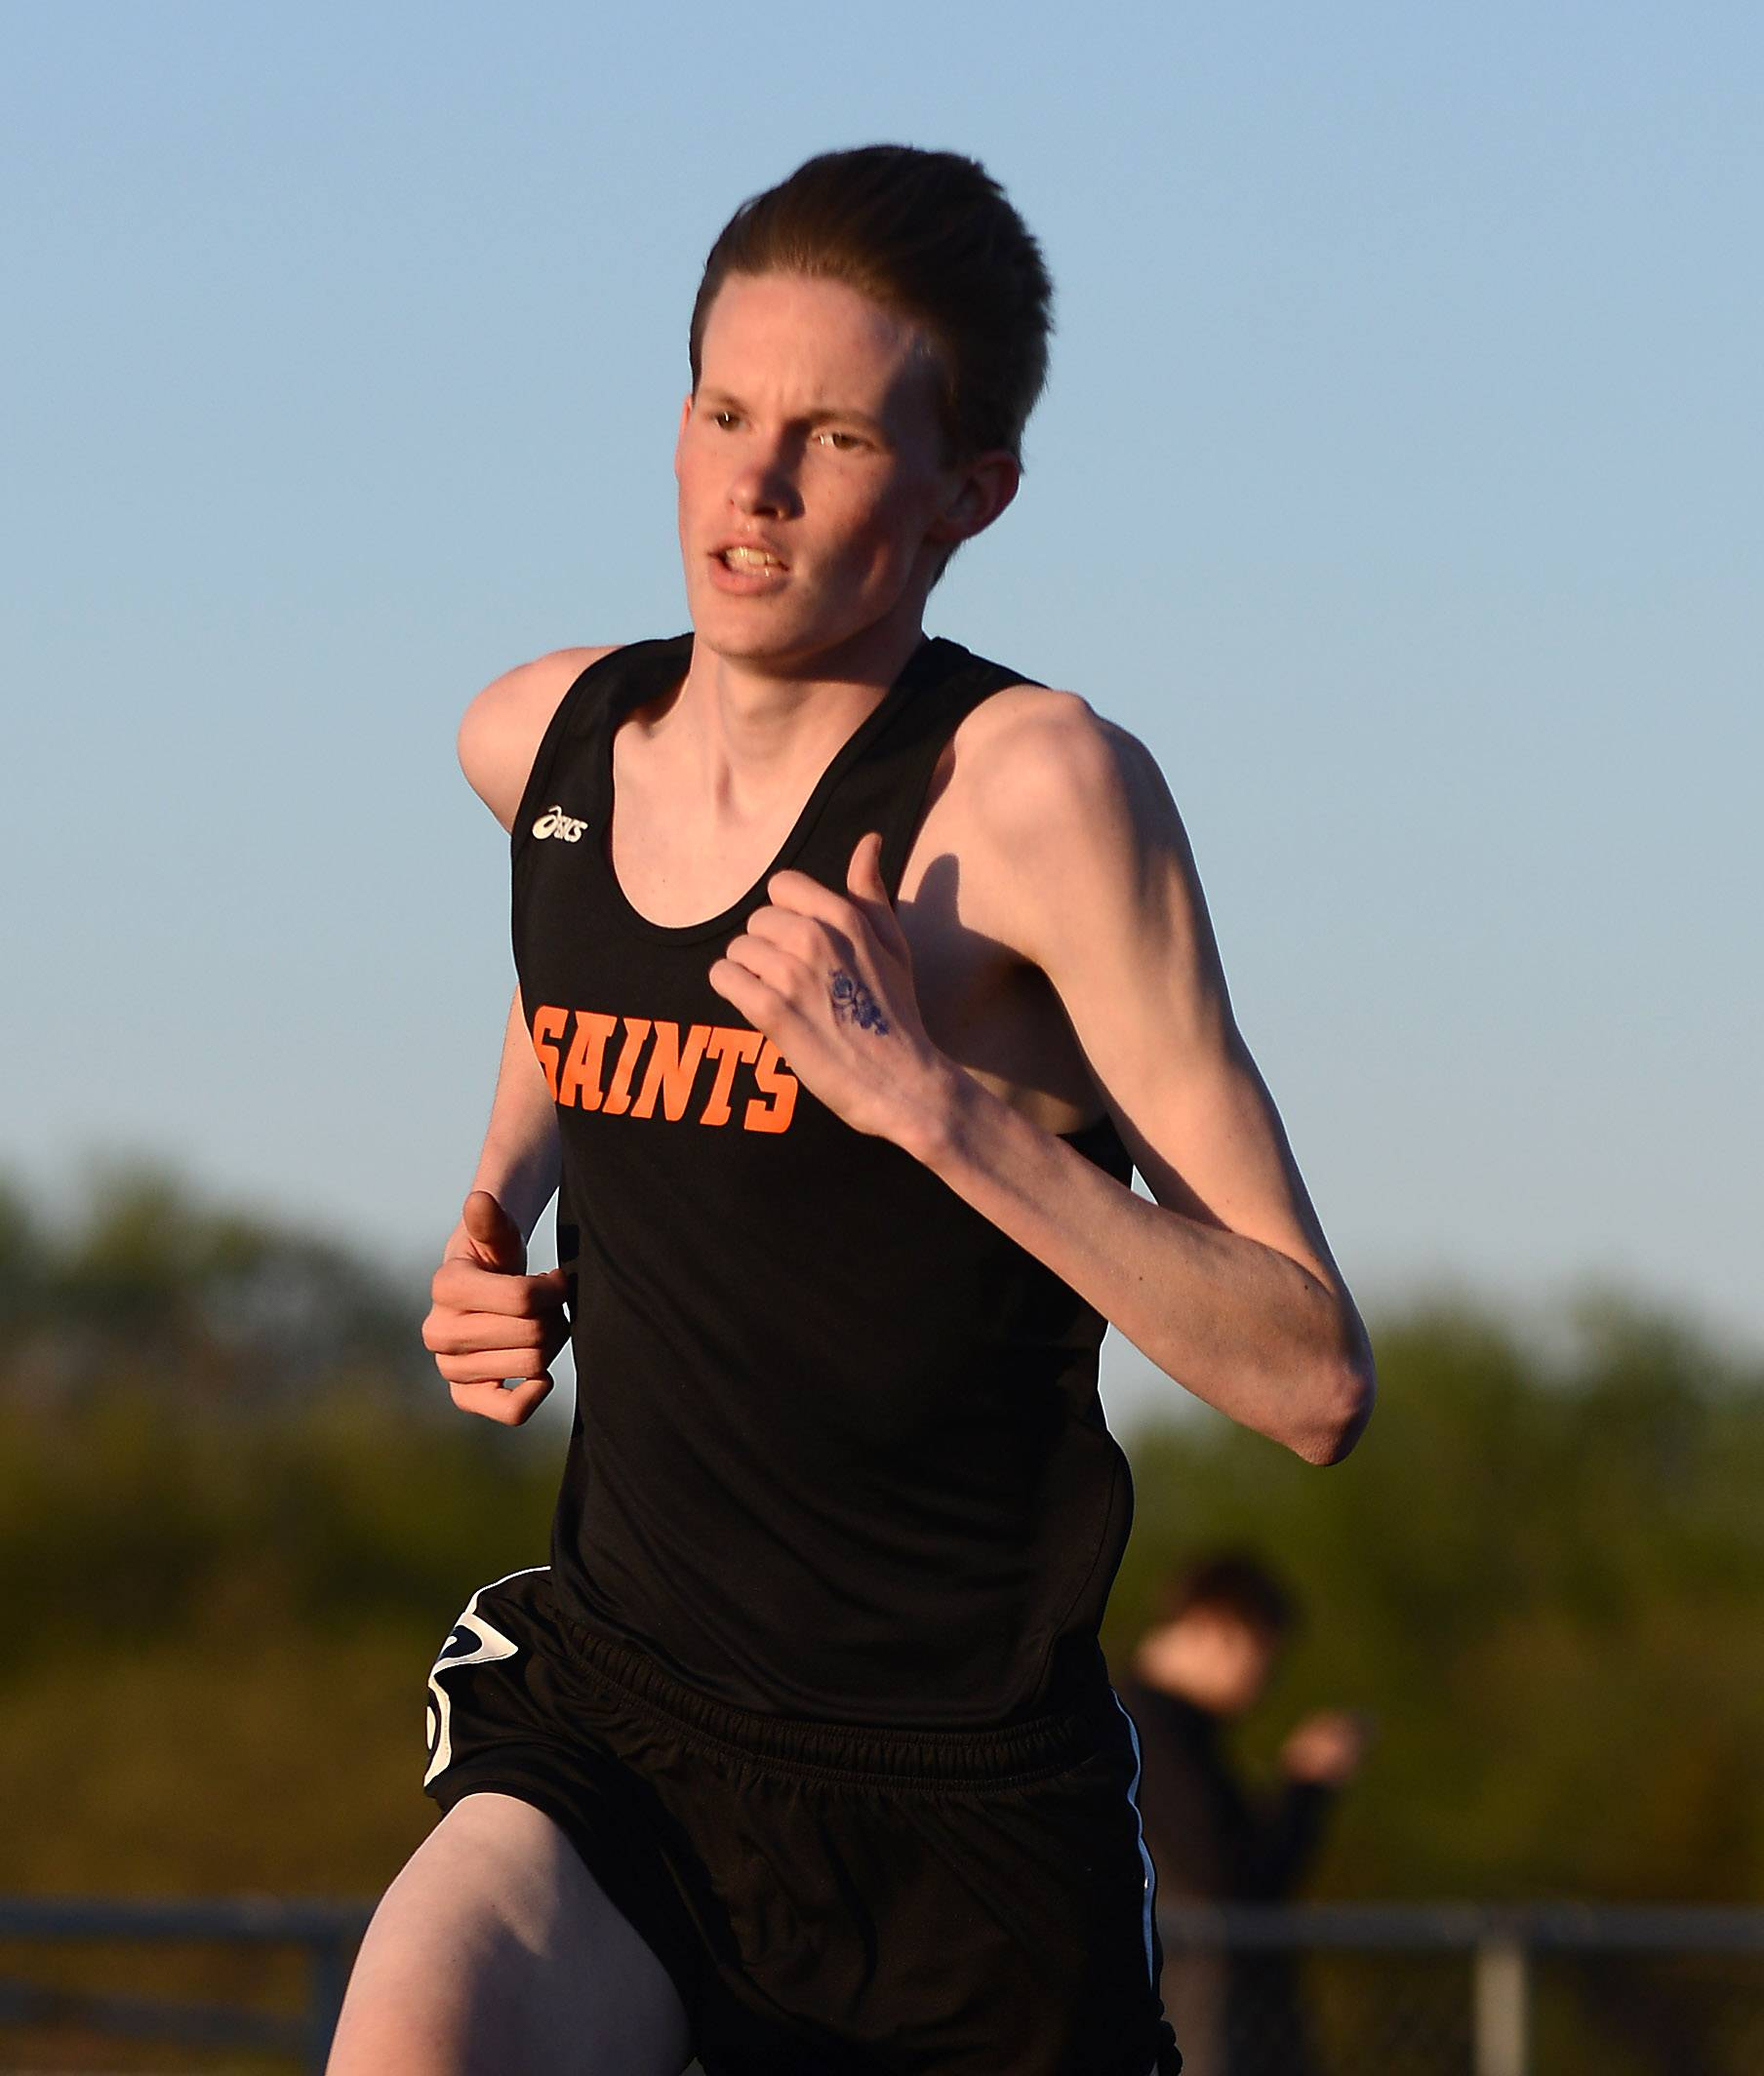 Rick West/rwest@dailyherald.com ¬ St. Charles East's Michael Gerkin won the 3200-meter run at the Kane County boys track meet in Streamwood Friday.